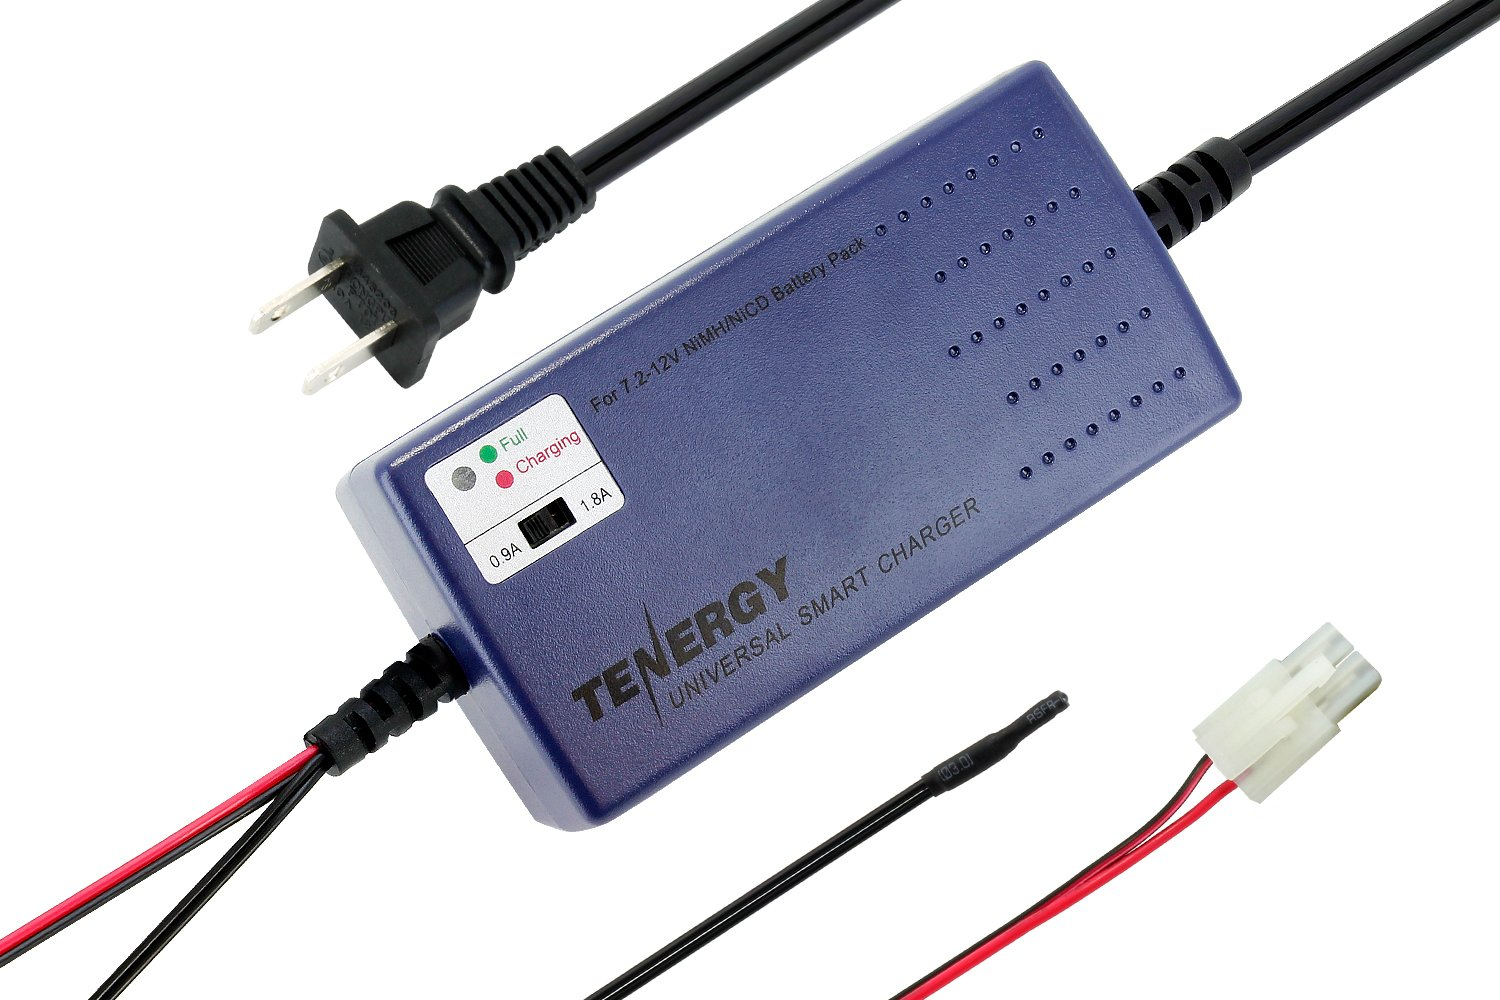 Tenergy Smart Universal Charger For Nimh Nicd Battery Cad With Little Parts Electronic Projects Circuits Pack 72v 12v Charging Current Selection Temperature Sensor Home Improvement